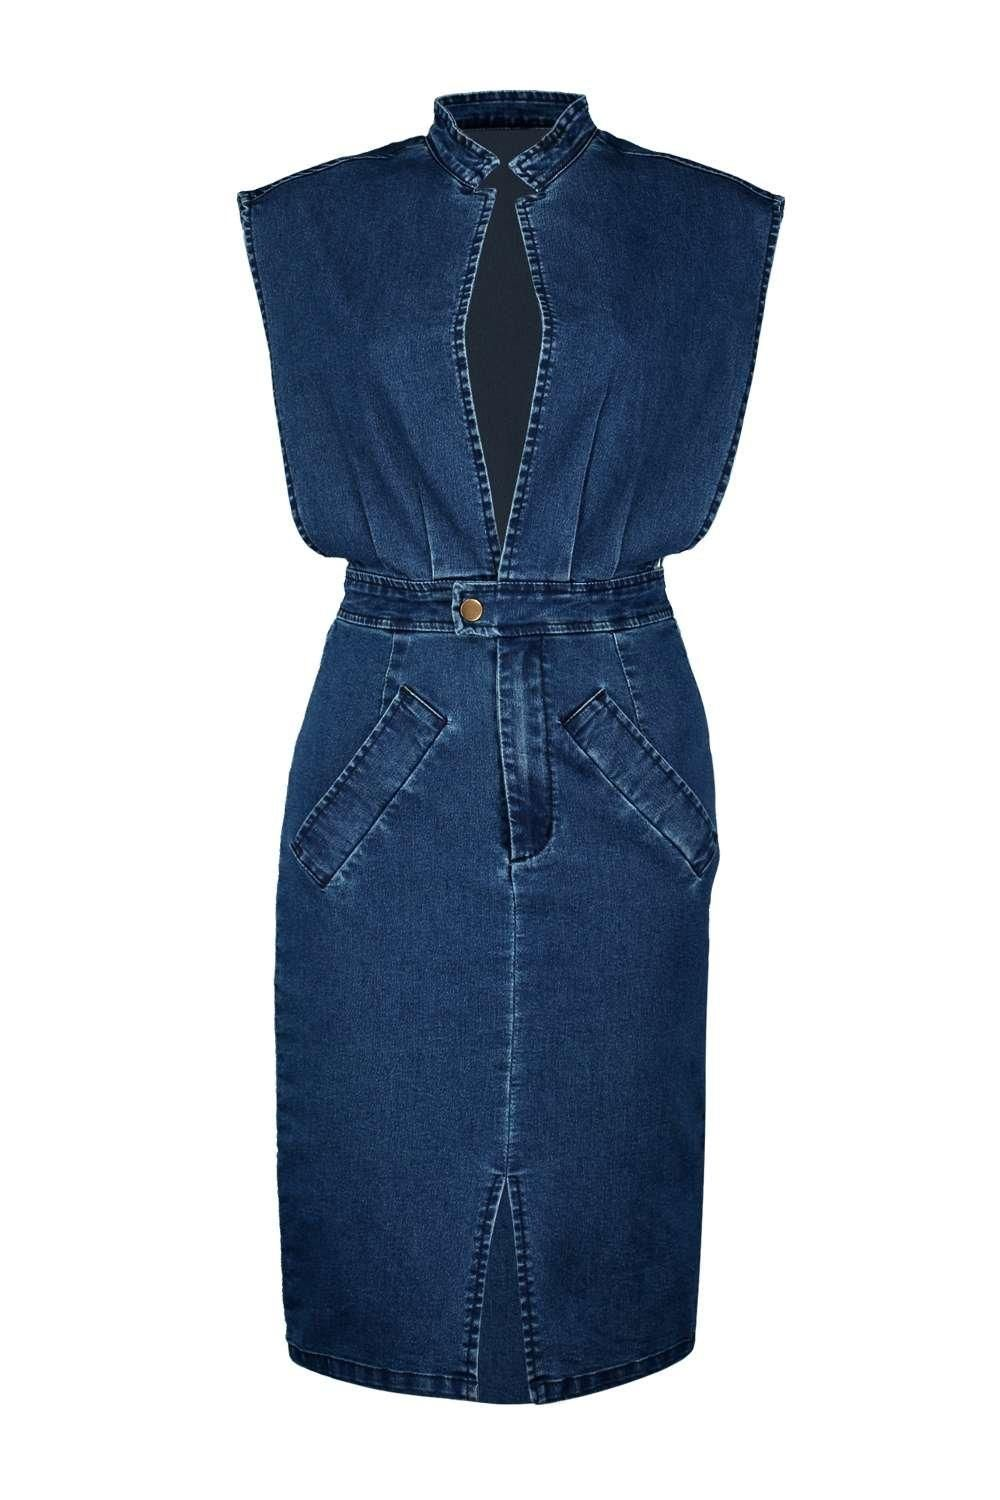 Boutique jessica open front denim dress heeled sandals high waist